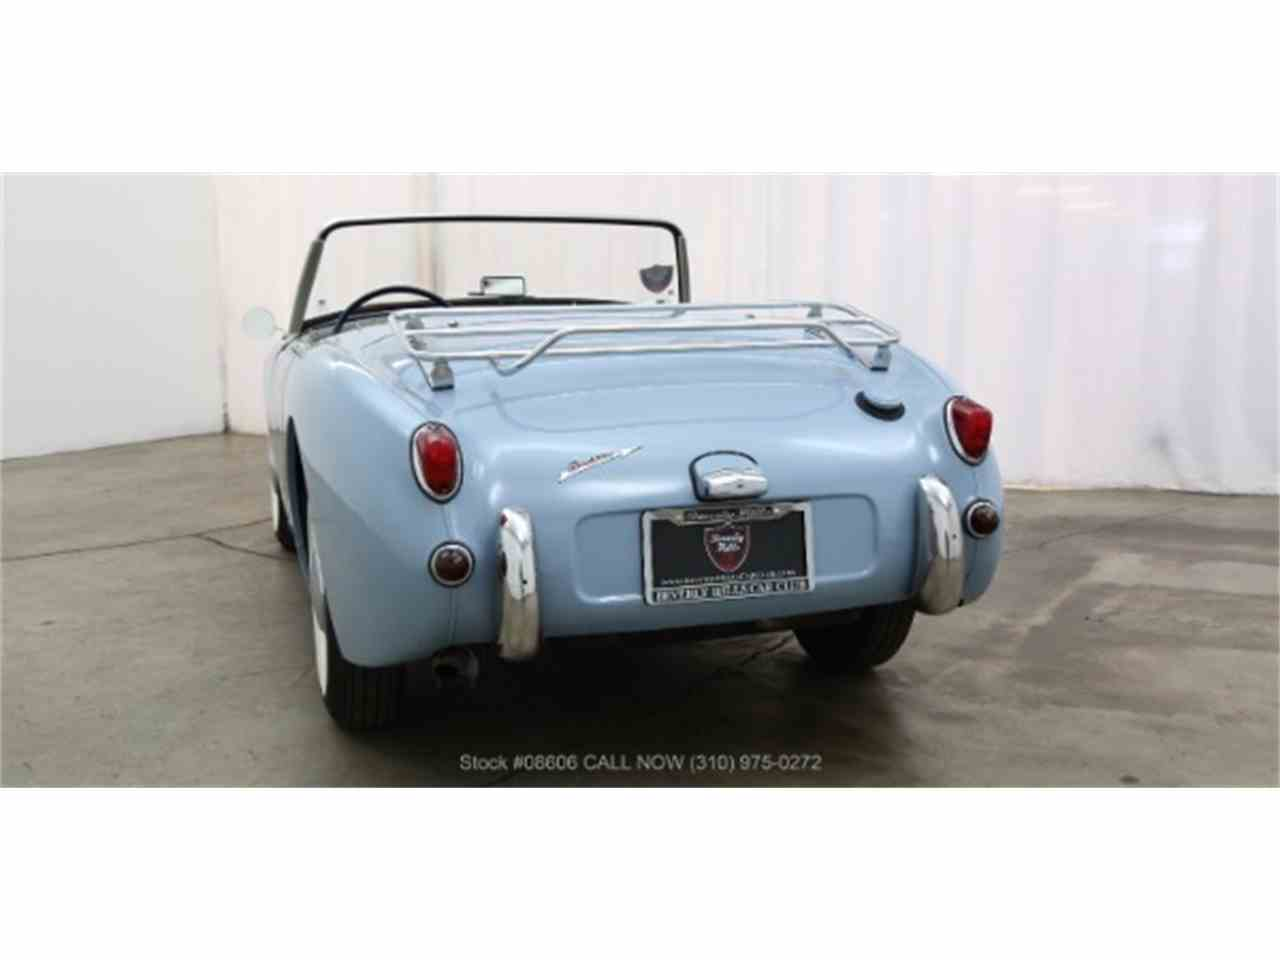 Large Picture of '61 Bugeye Sprite - LRV7